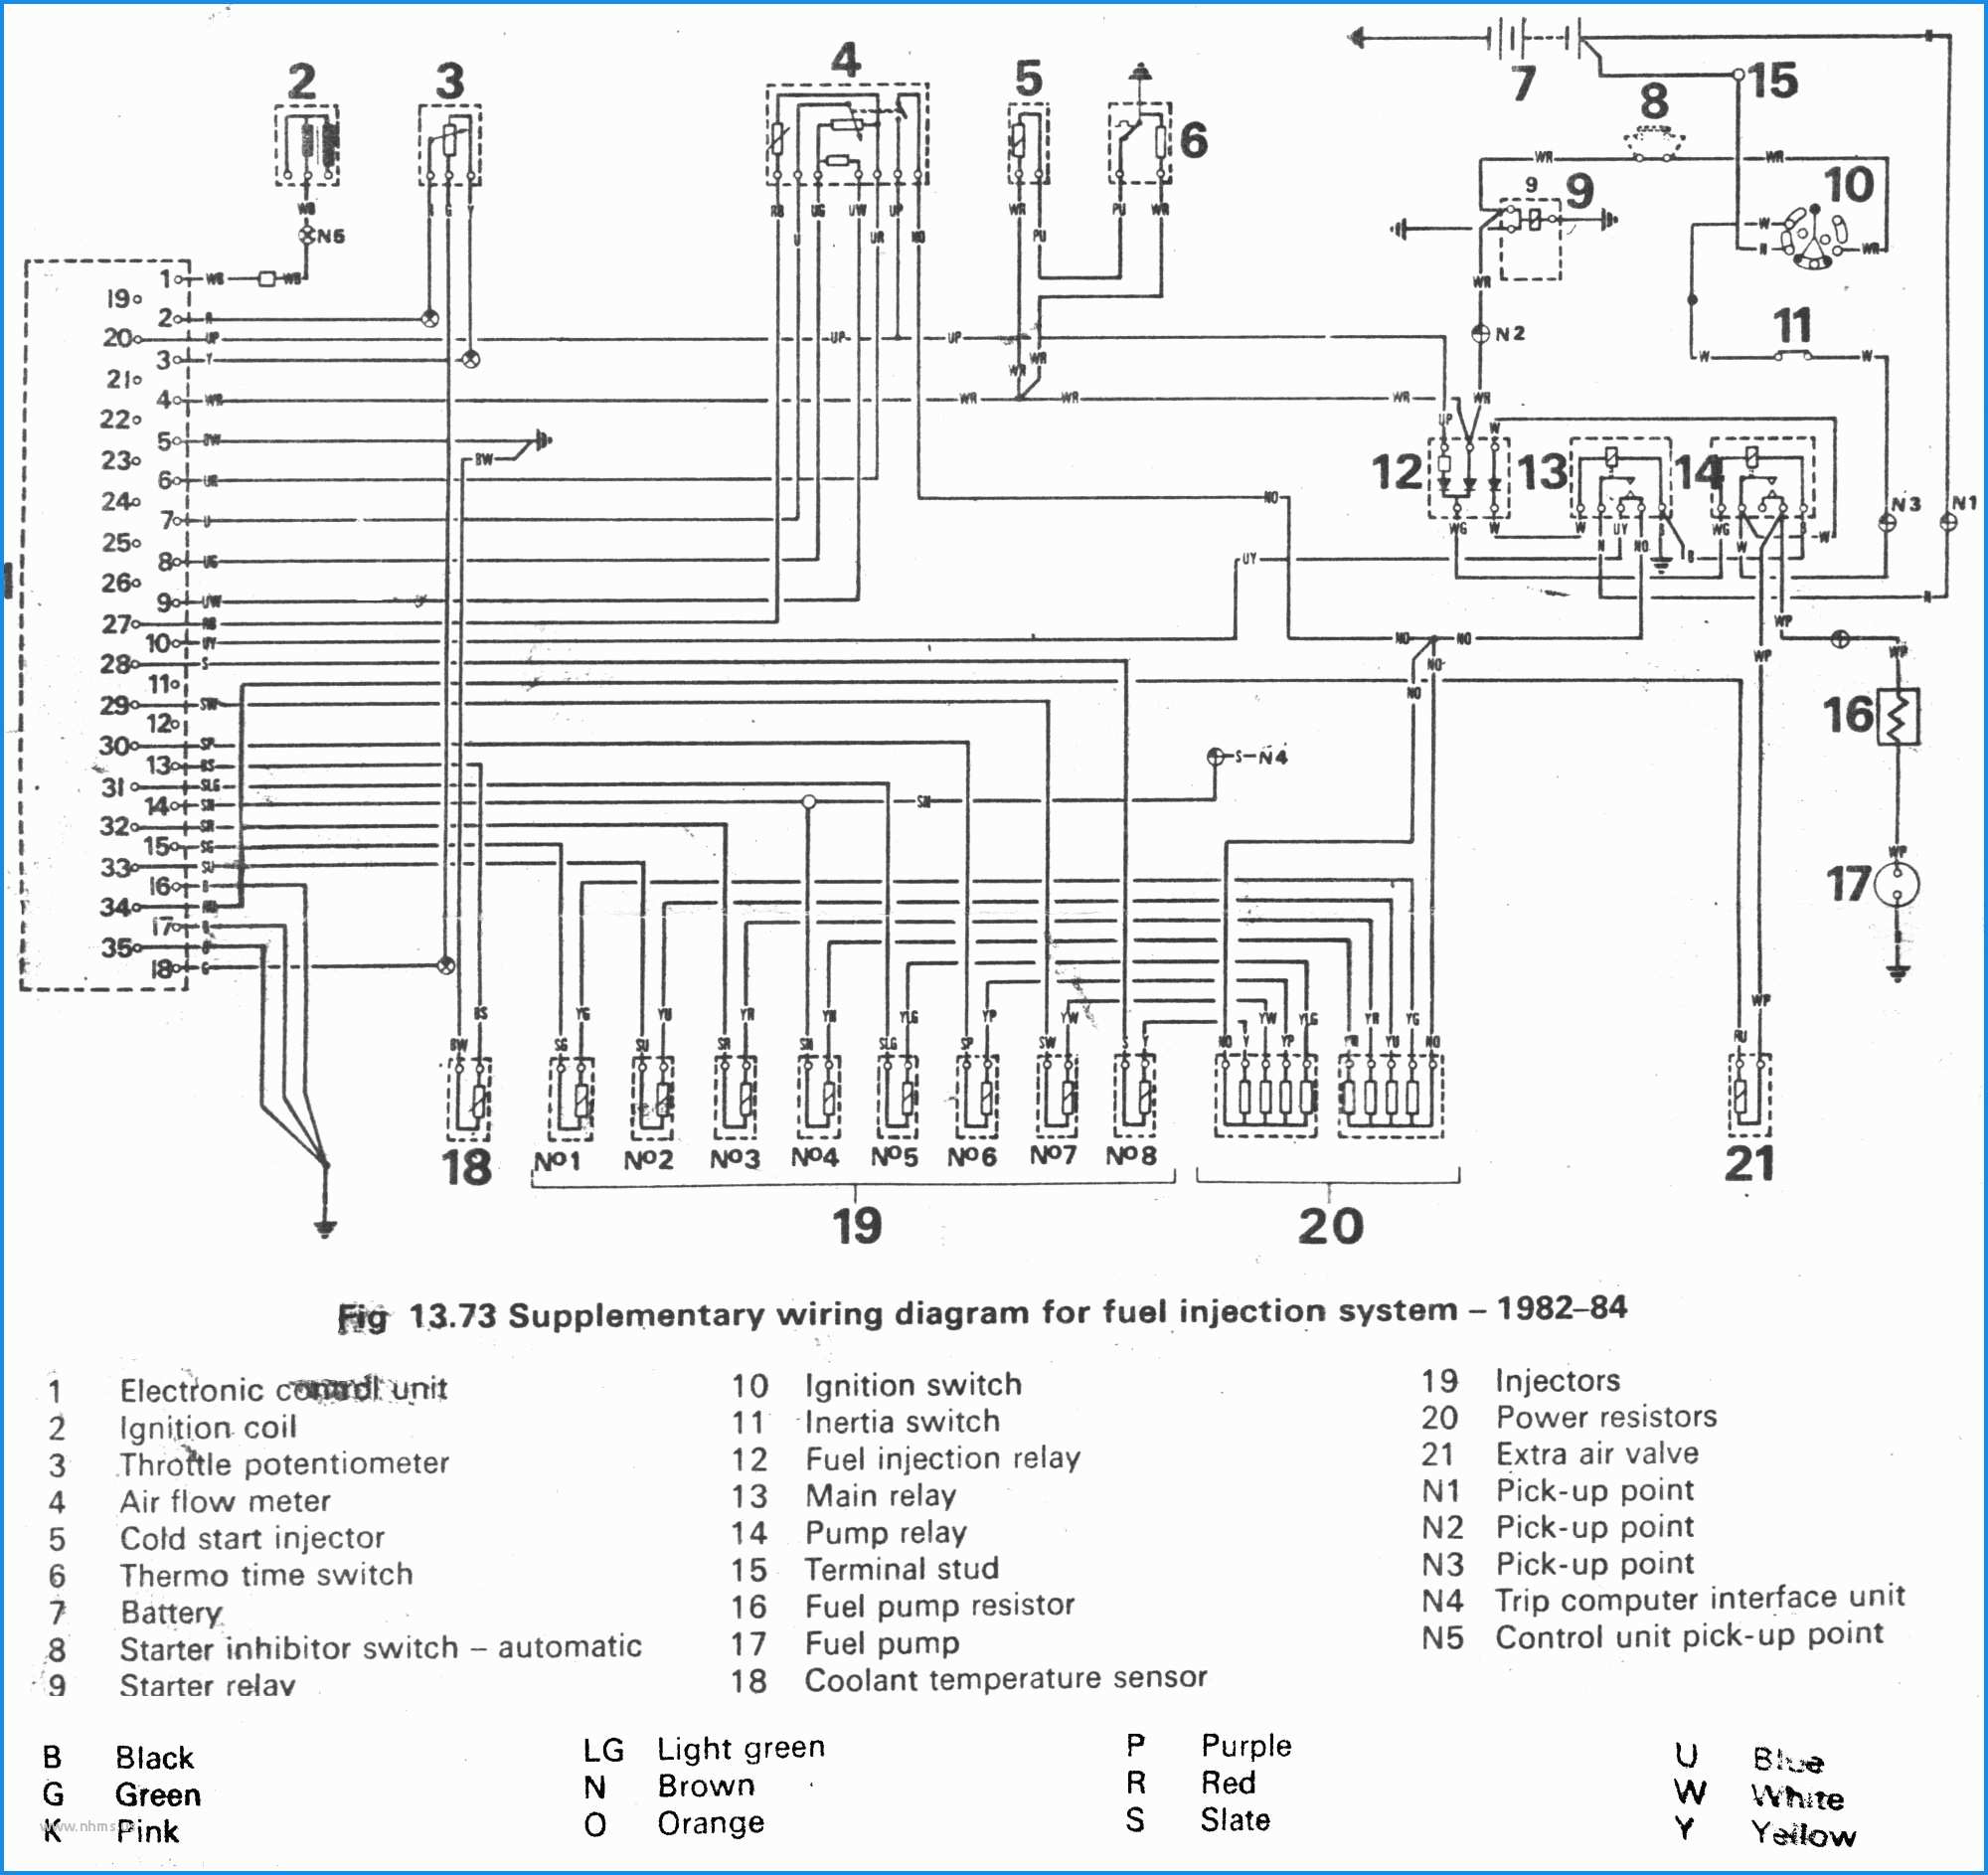 Diagram Land Rover Discovery 3 Radio Wiring Diagram Full Version Hd Quality Wiring Diagram 911wiring Prolocomontefano It